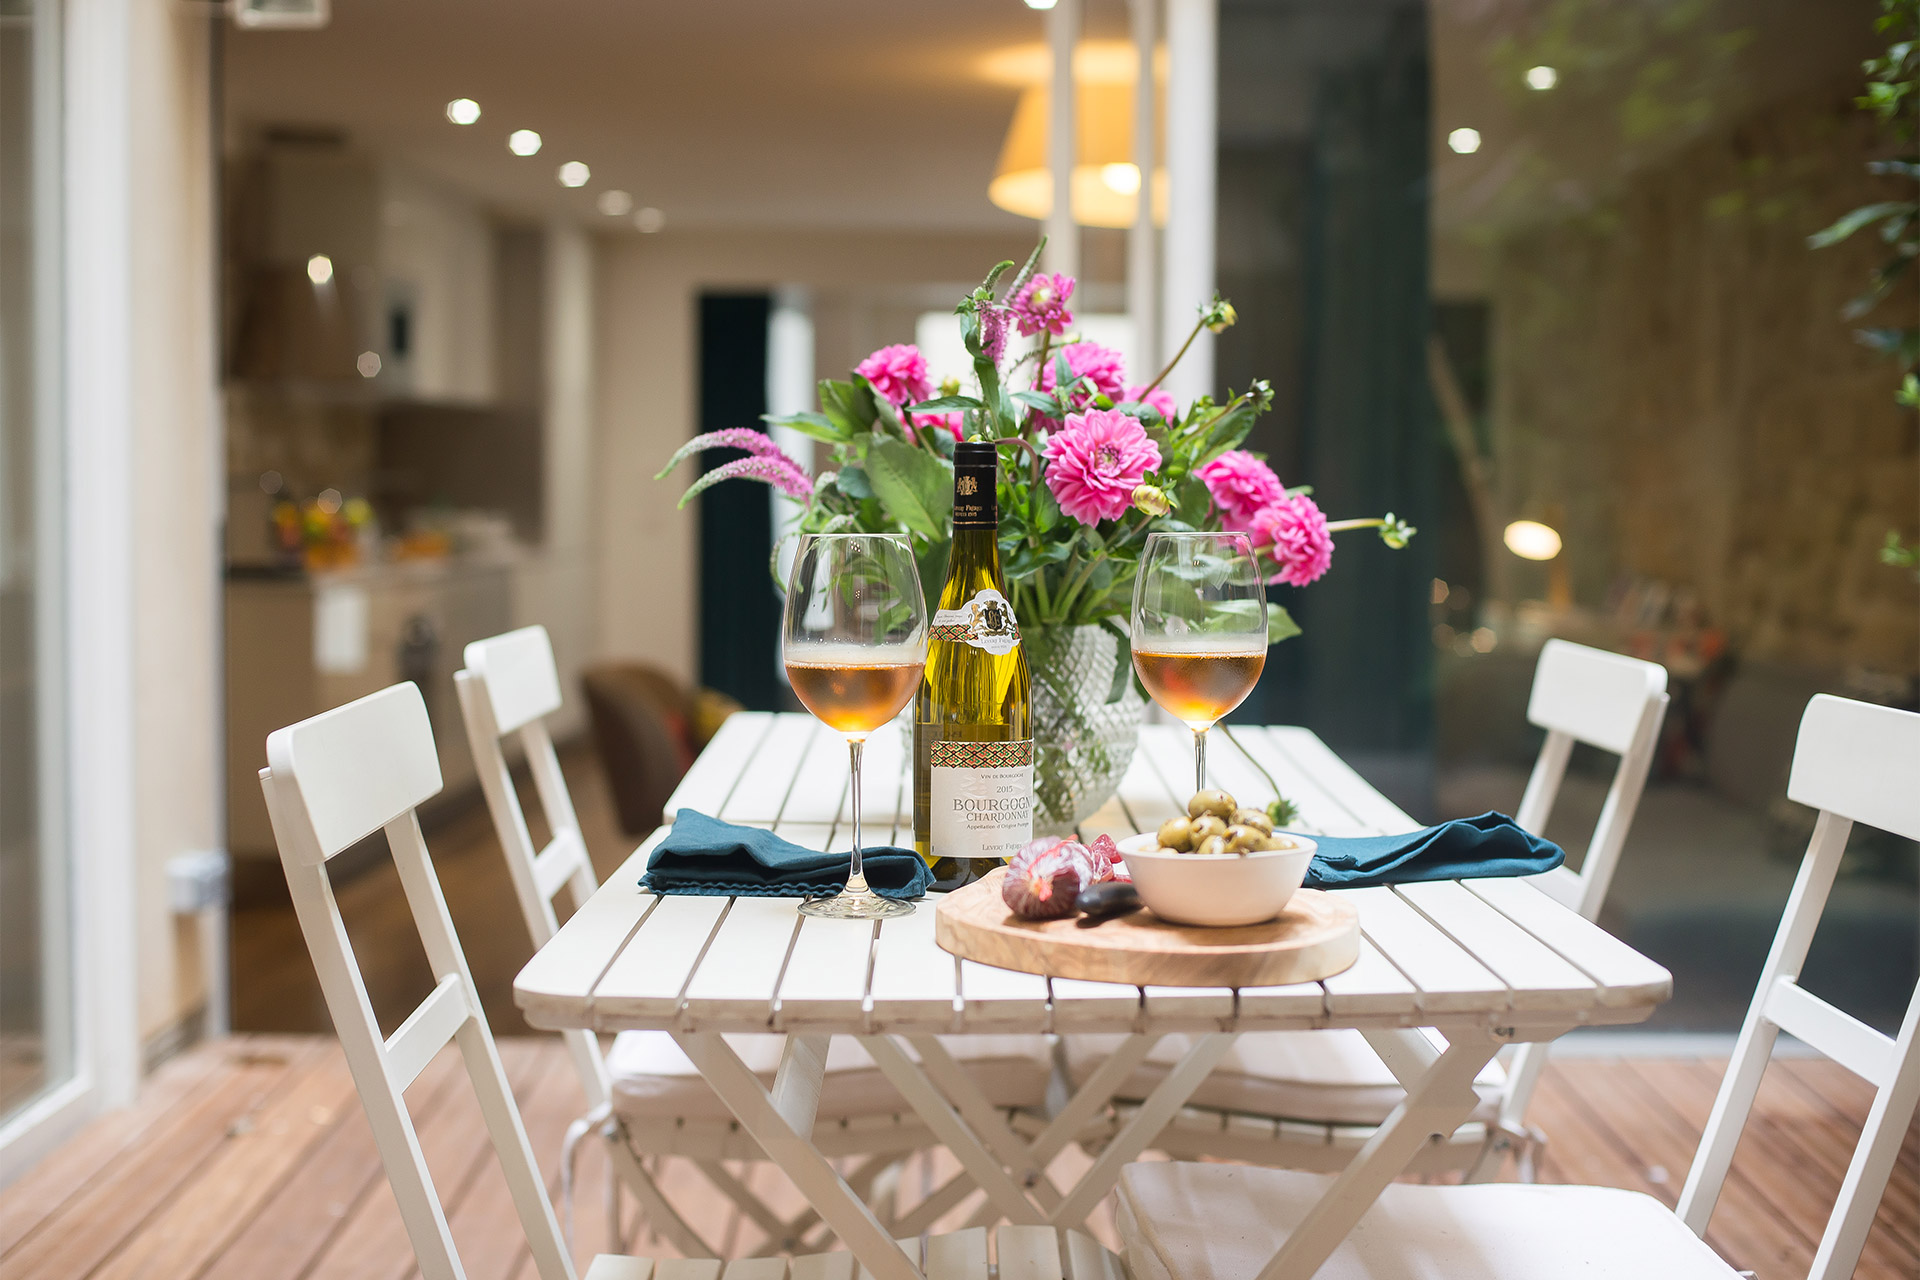 Enjoy meals al-fresco in your private garden at the Lascombes Paris Perfect rental